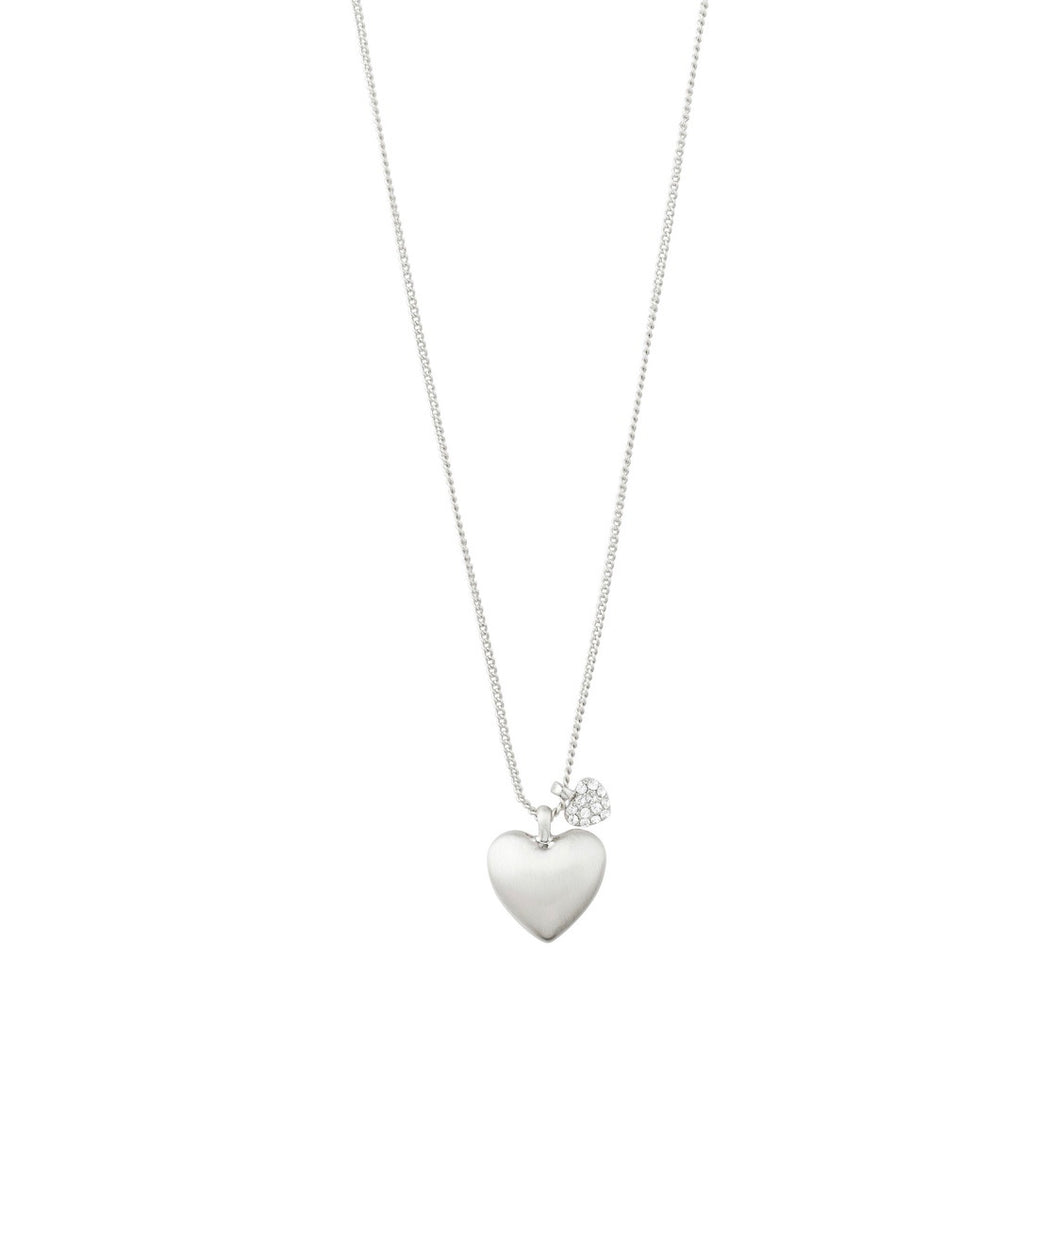 HEART ALWAYS Brushed Crystal Charm Necklace